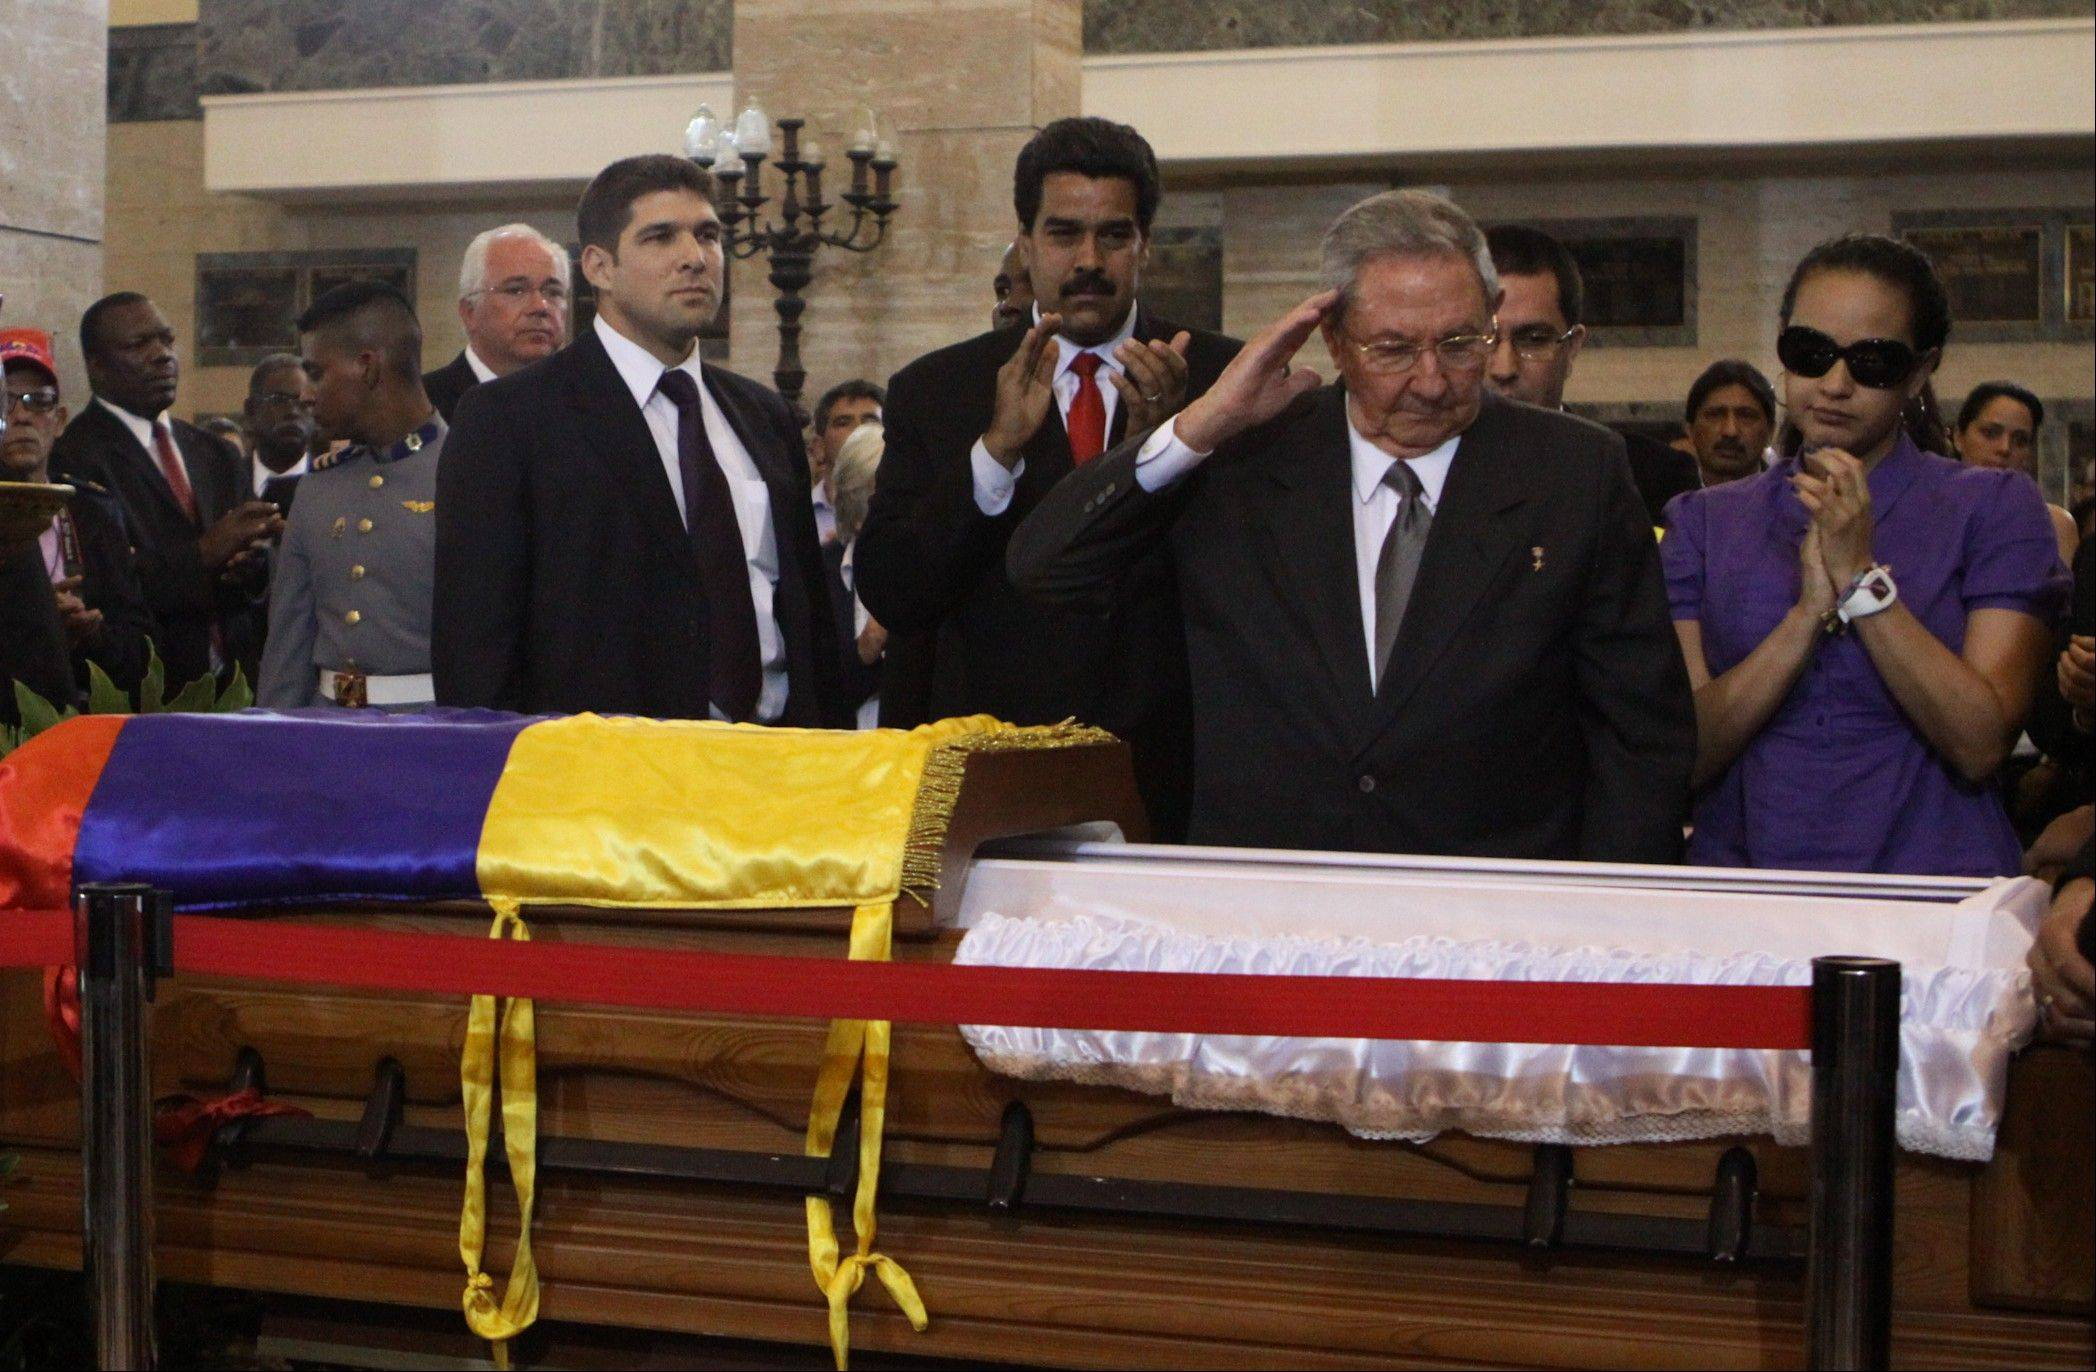 Cuba�s President Raul Castro salutes as he stands next to the coffin containing the body of Venezuela�s late President Hugo Chavez. A state funeral for Chavez attended by some 33 heads of government is scheduled to begin Friday morning. At right is Chavez�s daughter Rosa Virginia Chavez and center is Vice-President Nicolas Maduro.